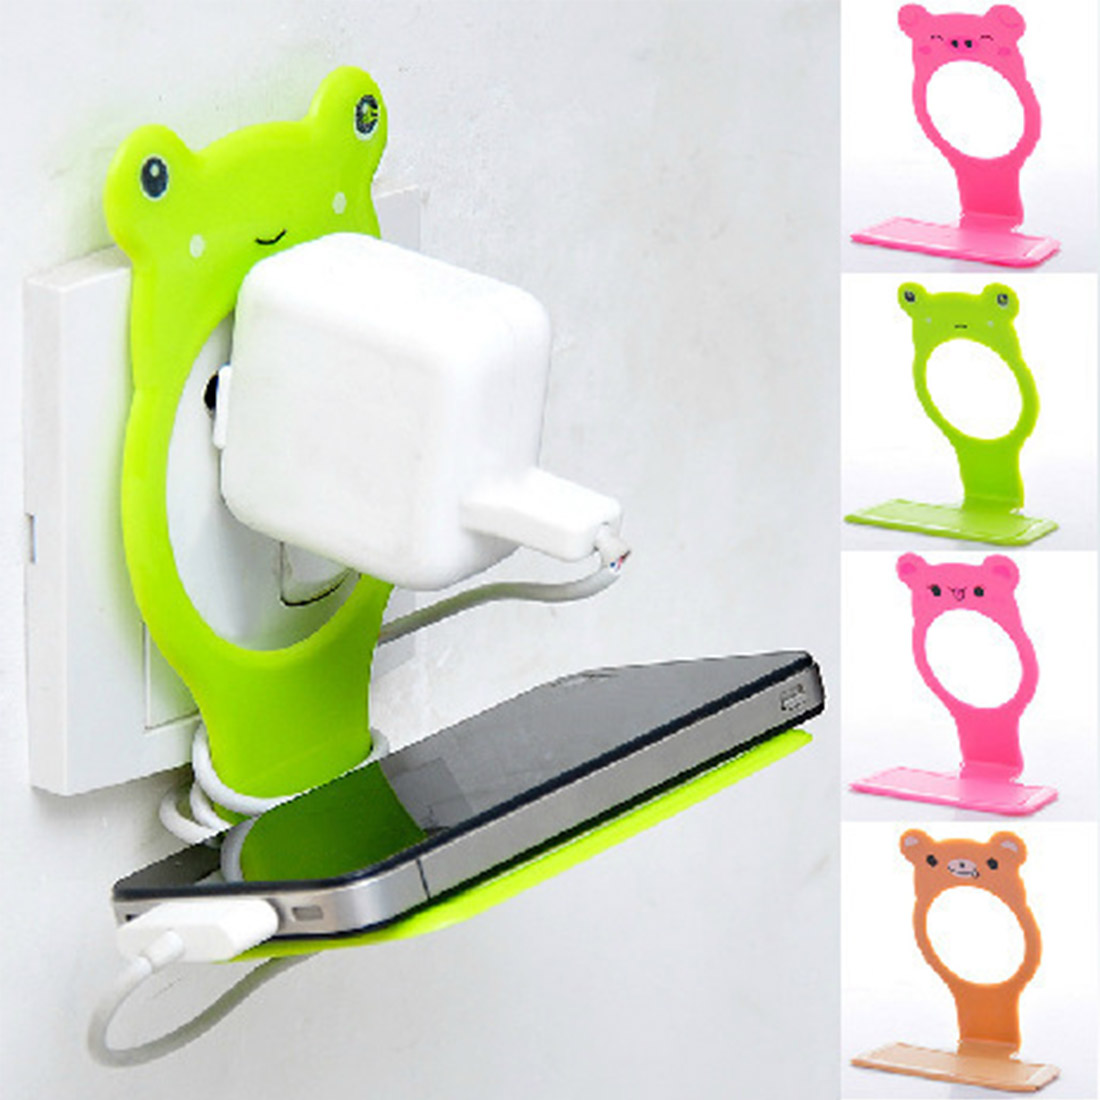 Mobile Phone Holder Hangs Wall Charging Holder For Tablet Cellphone For IPhone X 8 SE Stand Support For Samsung S9 Plus Xiaomi 8